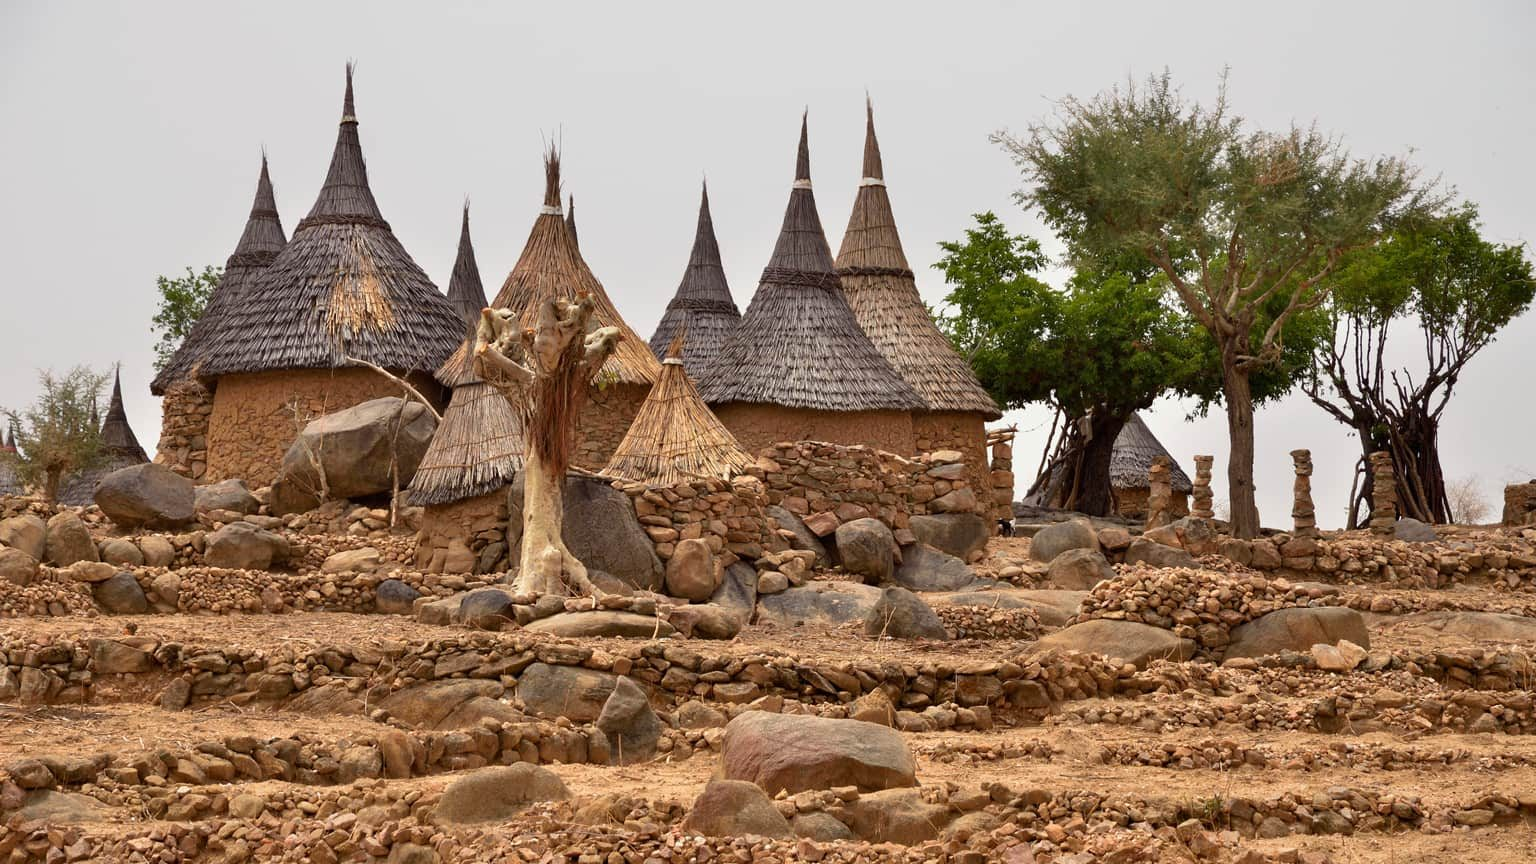 Village with typically thatched rondavels in the Mandara Mountains, Cameroon, Central Africa